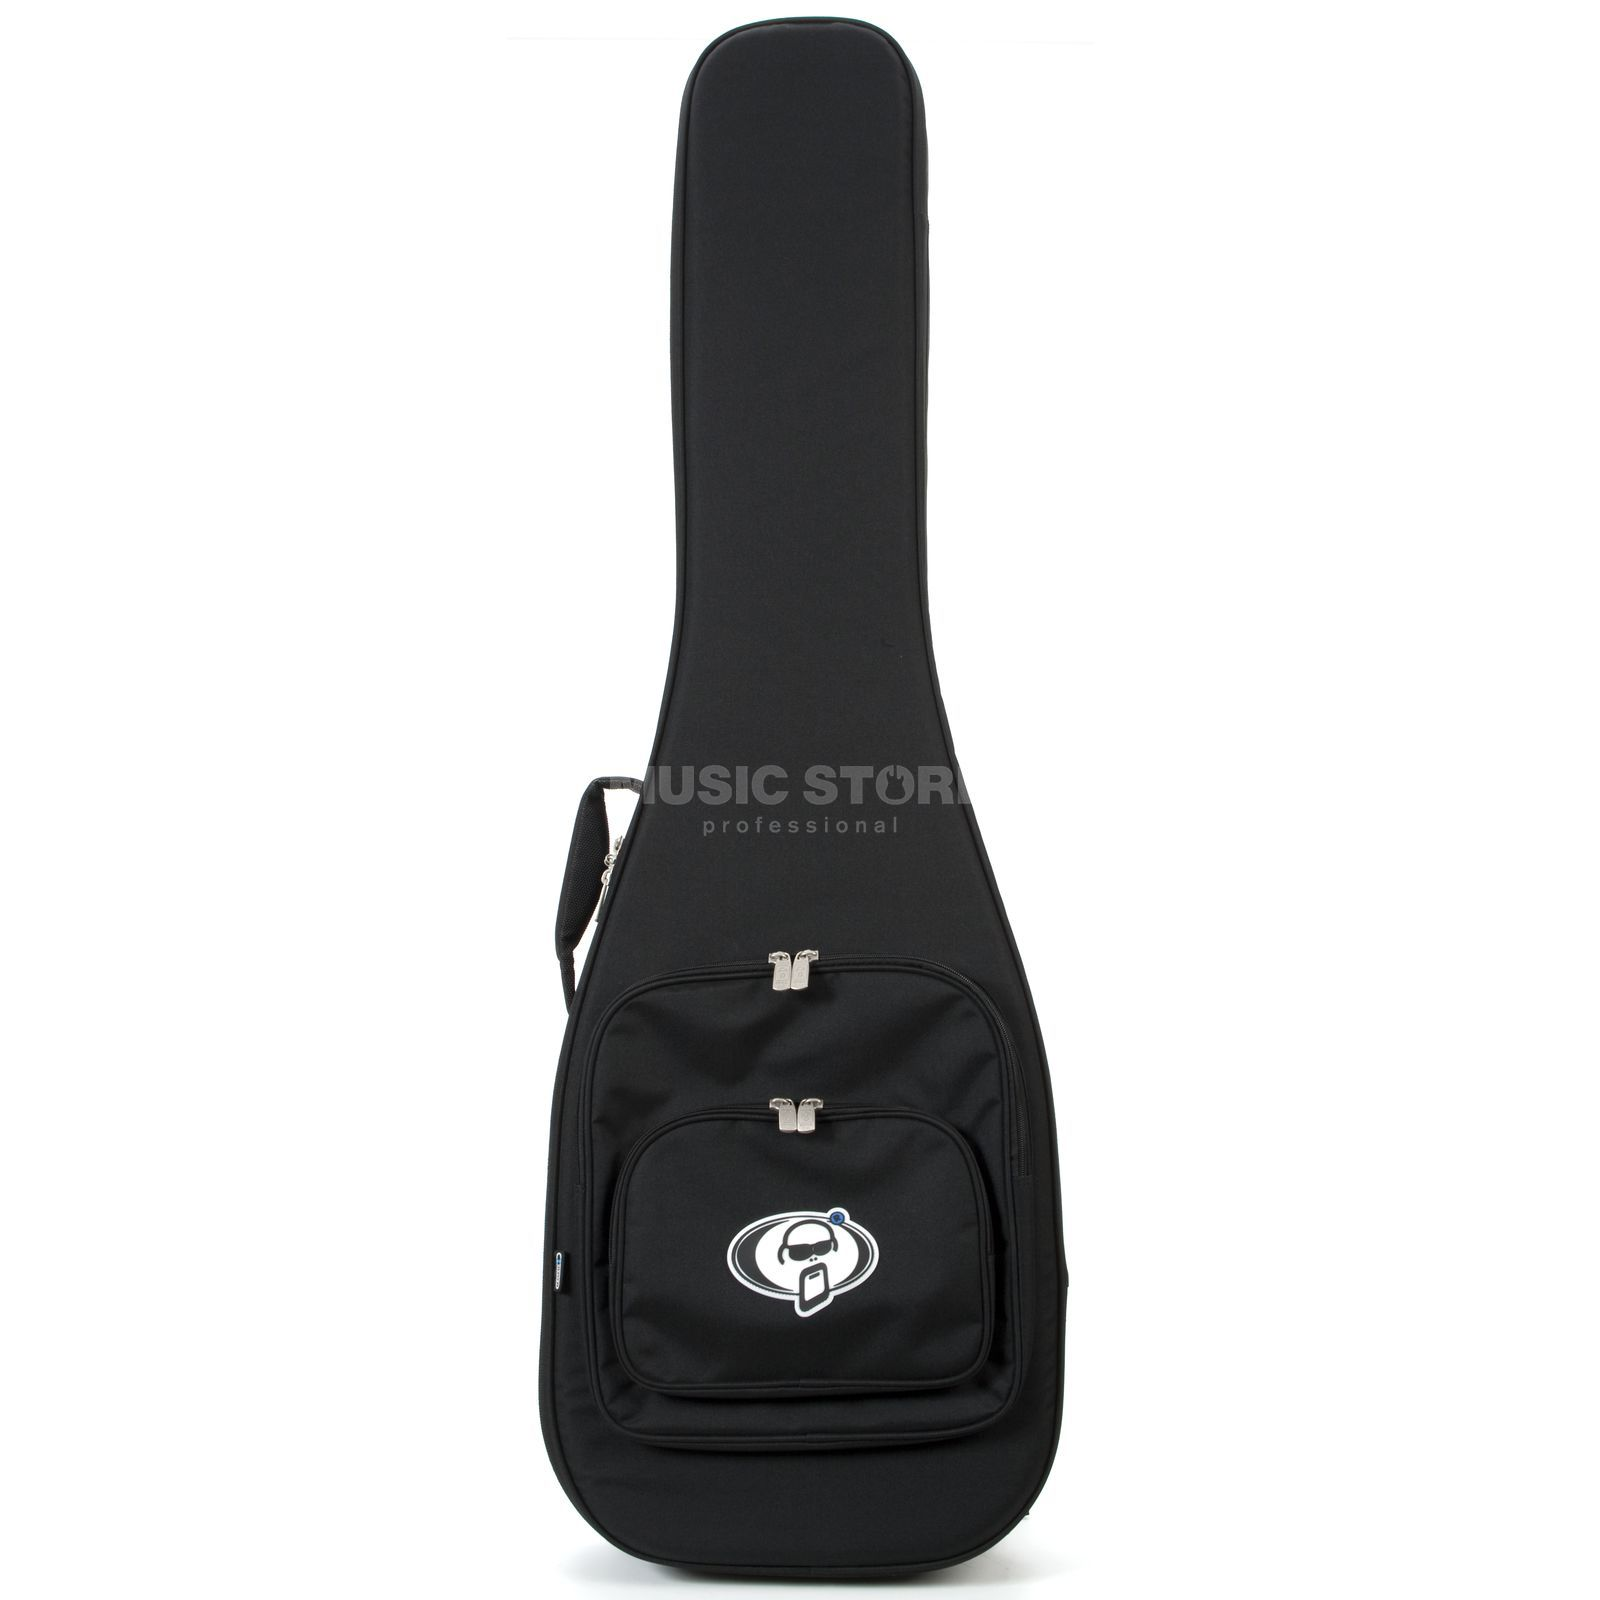 Protection Racket Case Bass Standard 7051  Zdjęcie produktu